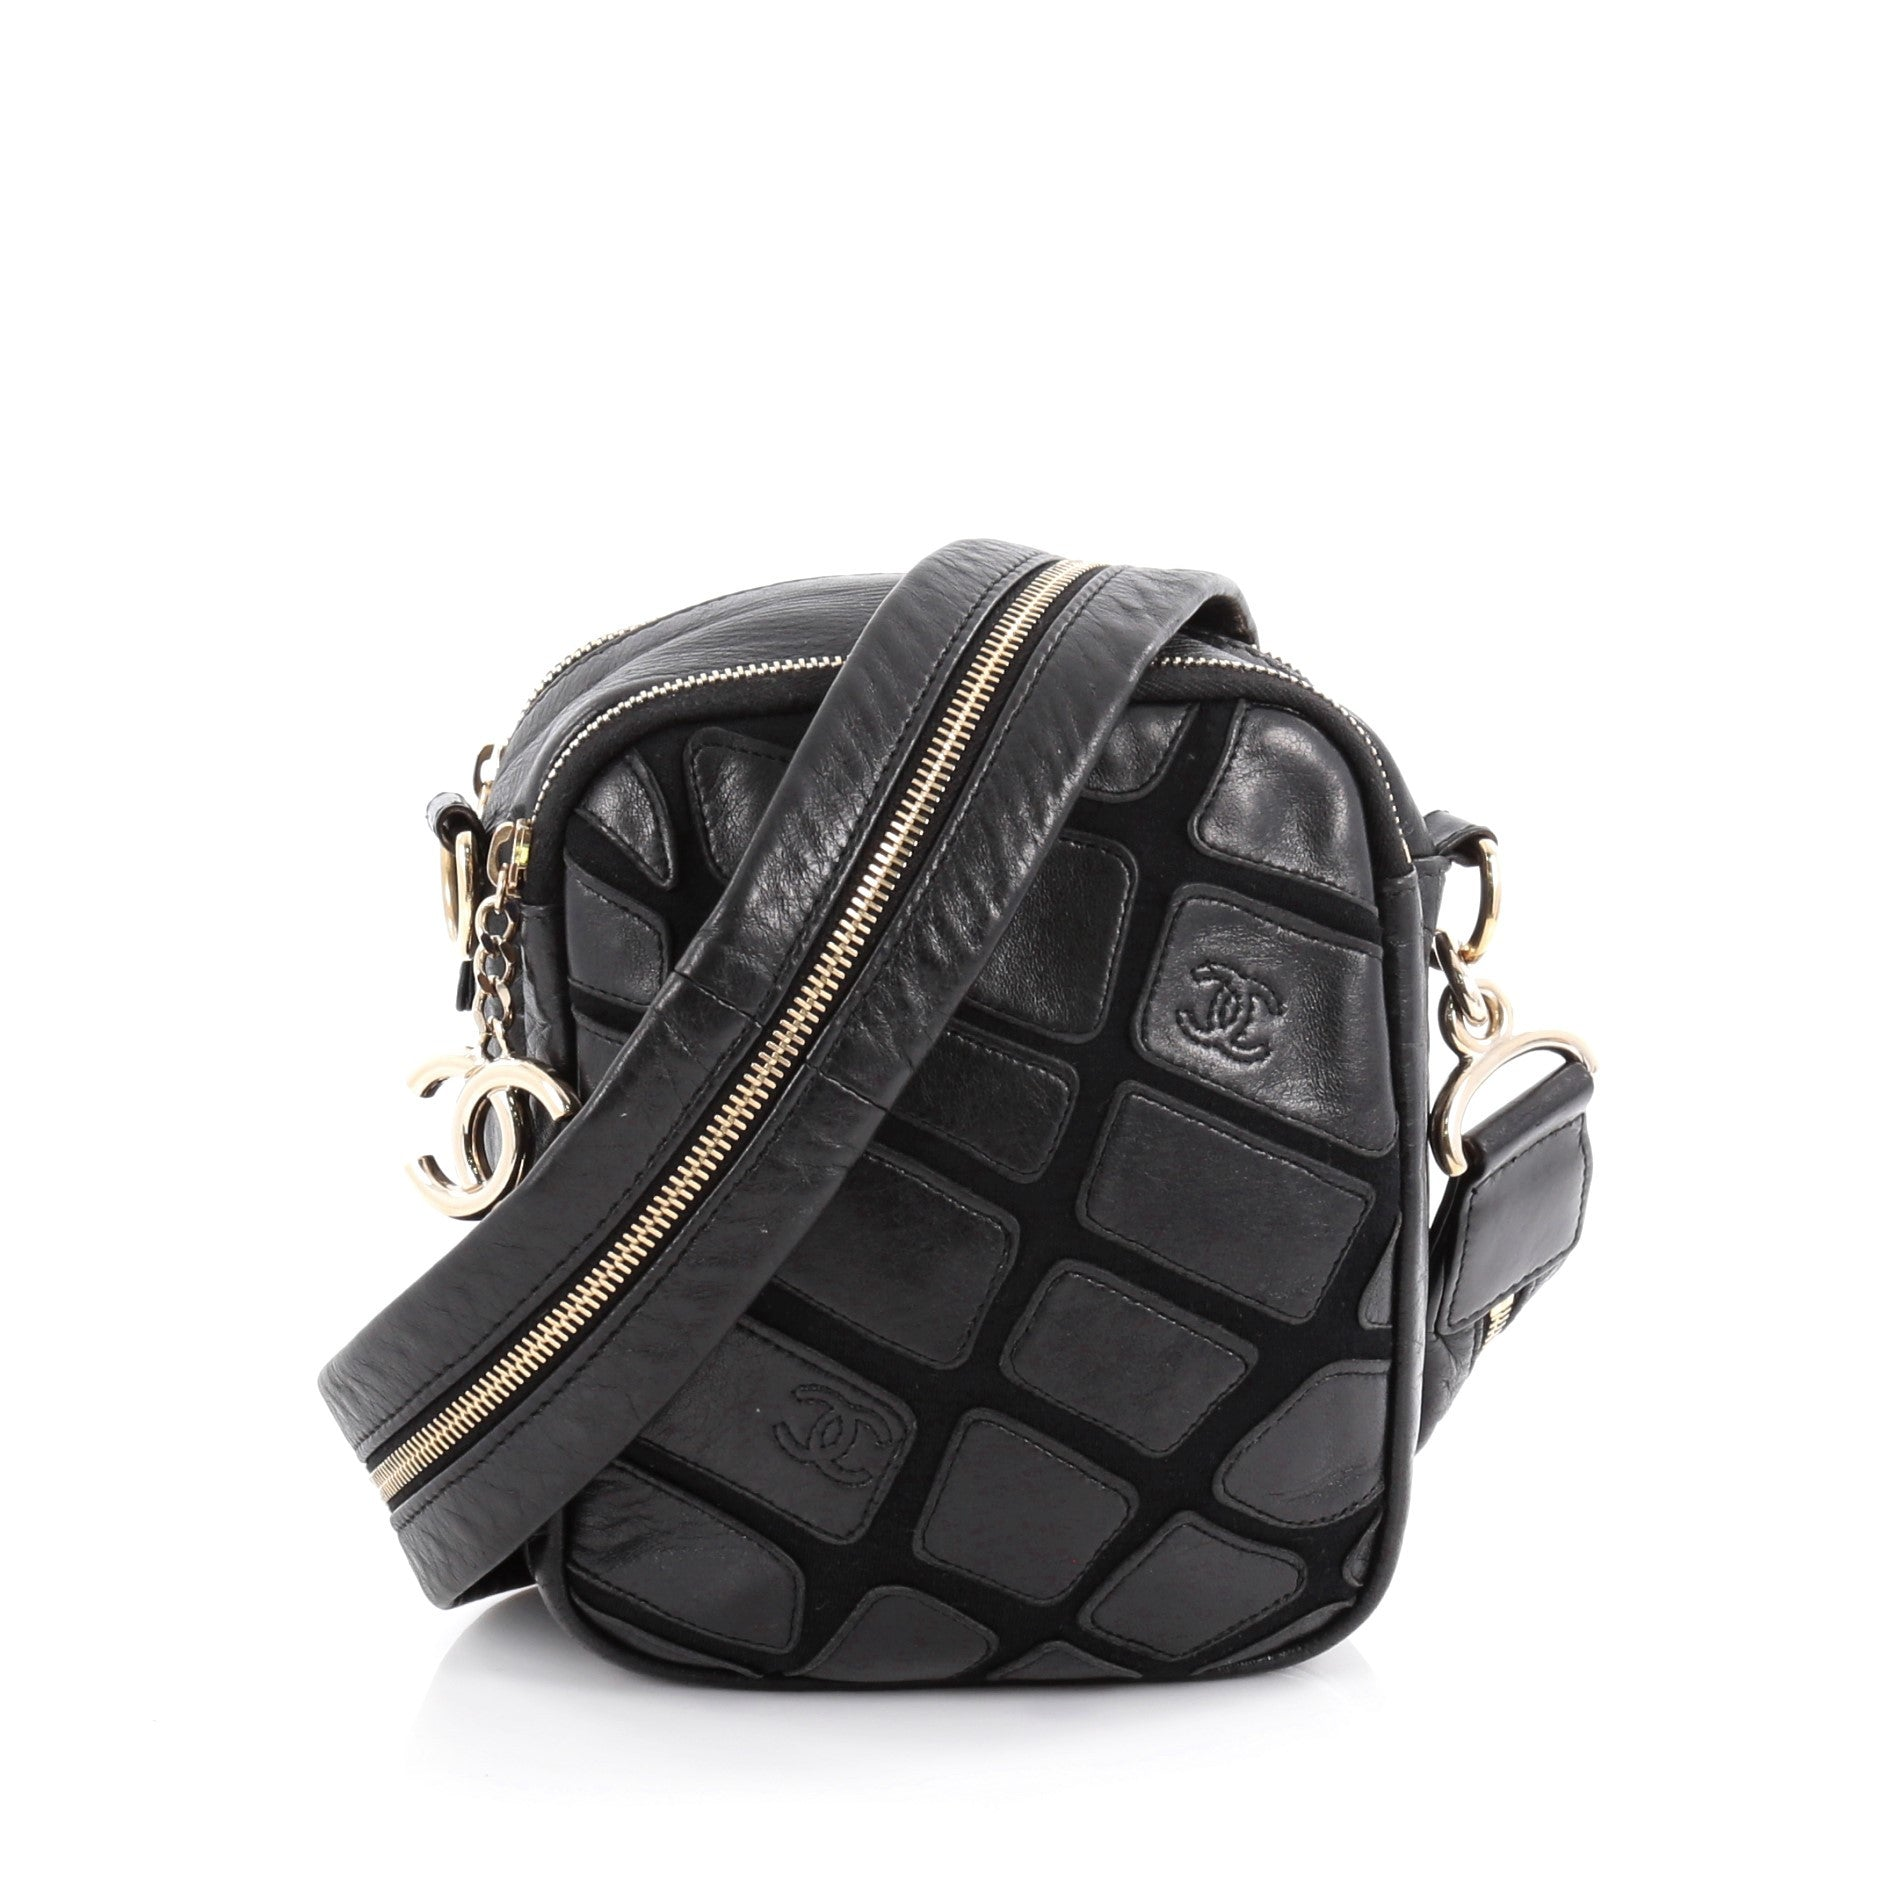 e2add58622ca67 21014-01_Chanel_Scales_Camera_Bag_Leather_With_Jer_2D_0003.jpg?v=1499779966